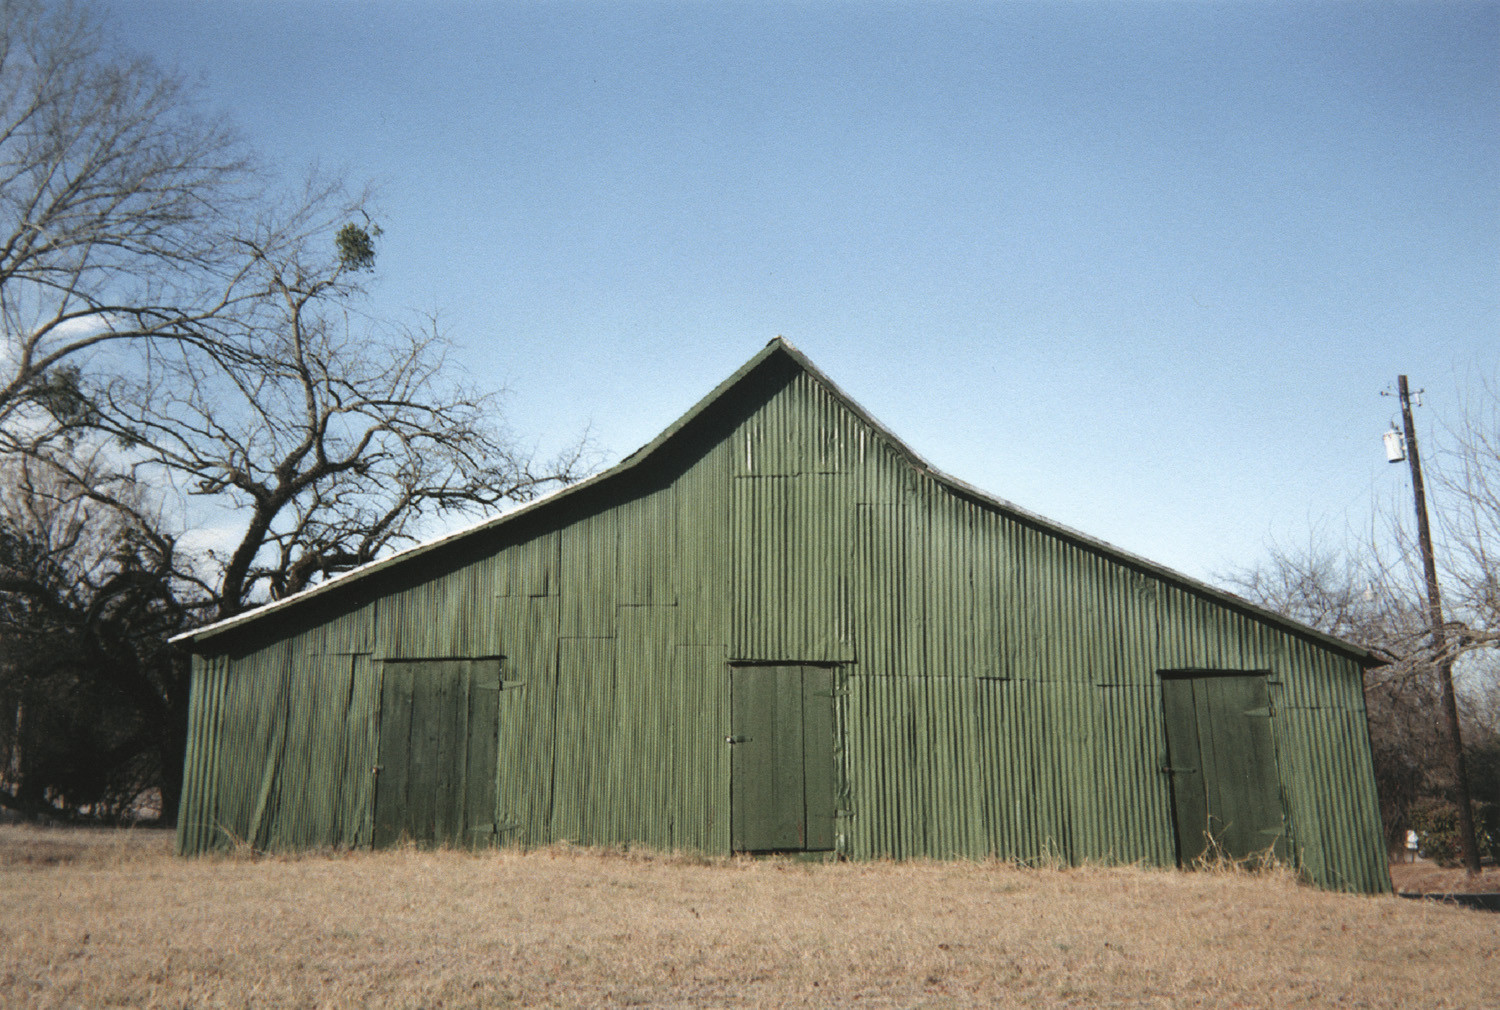 William Christenberry, Green Warehouse, Newbern, Alabama, 2001